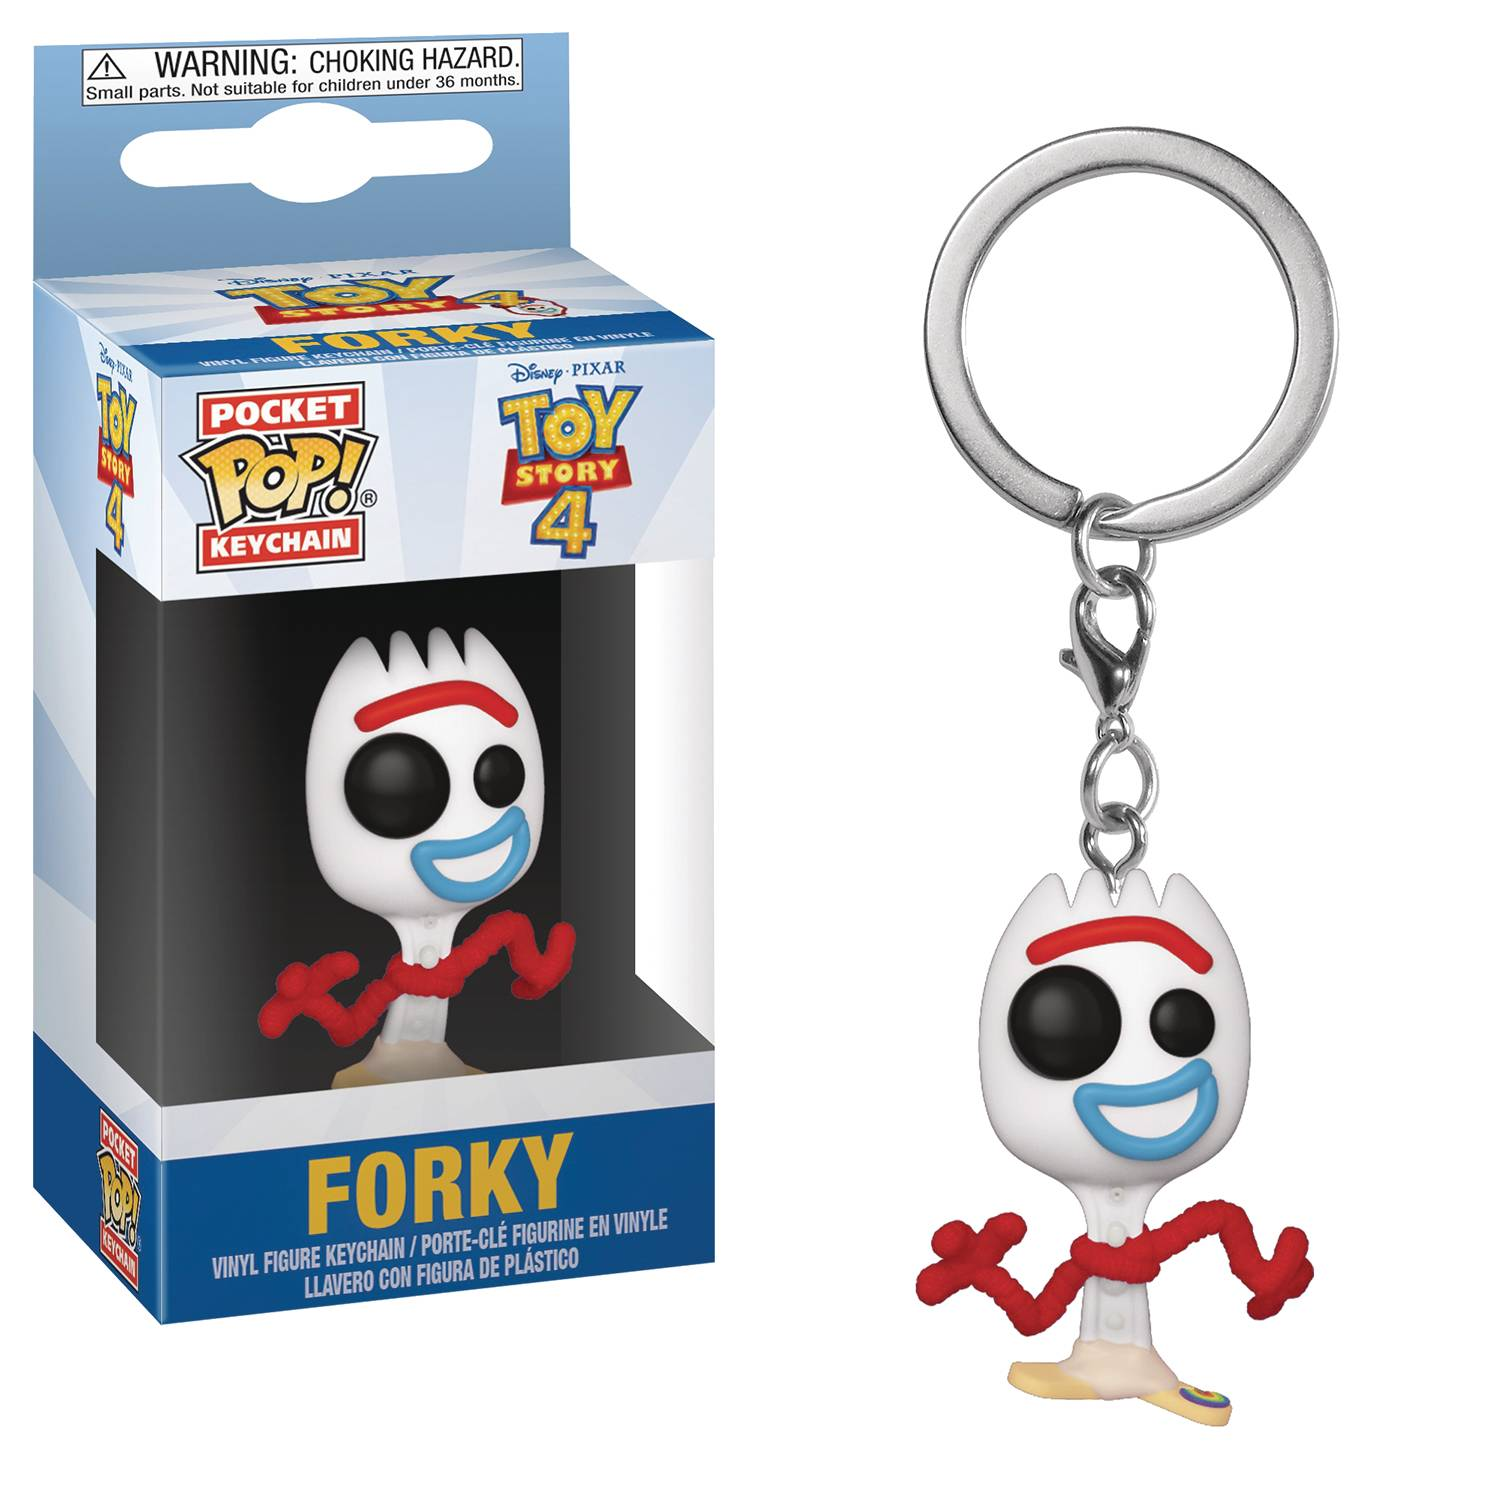 POCKET POP TOY STORY 4 FORKY KEYCHAIN